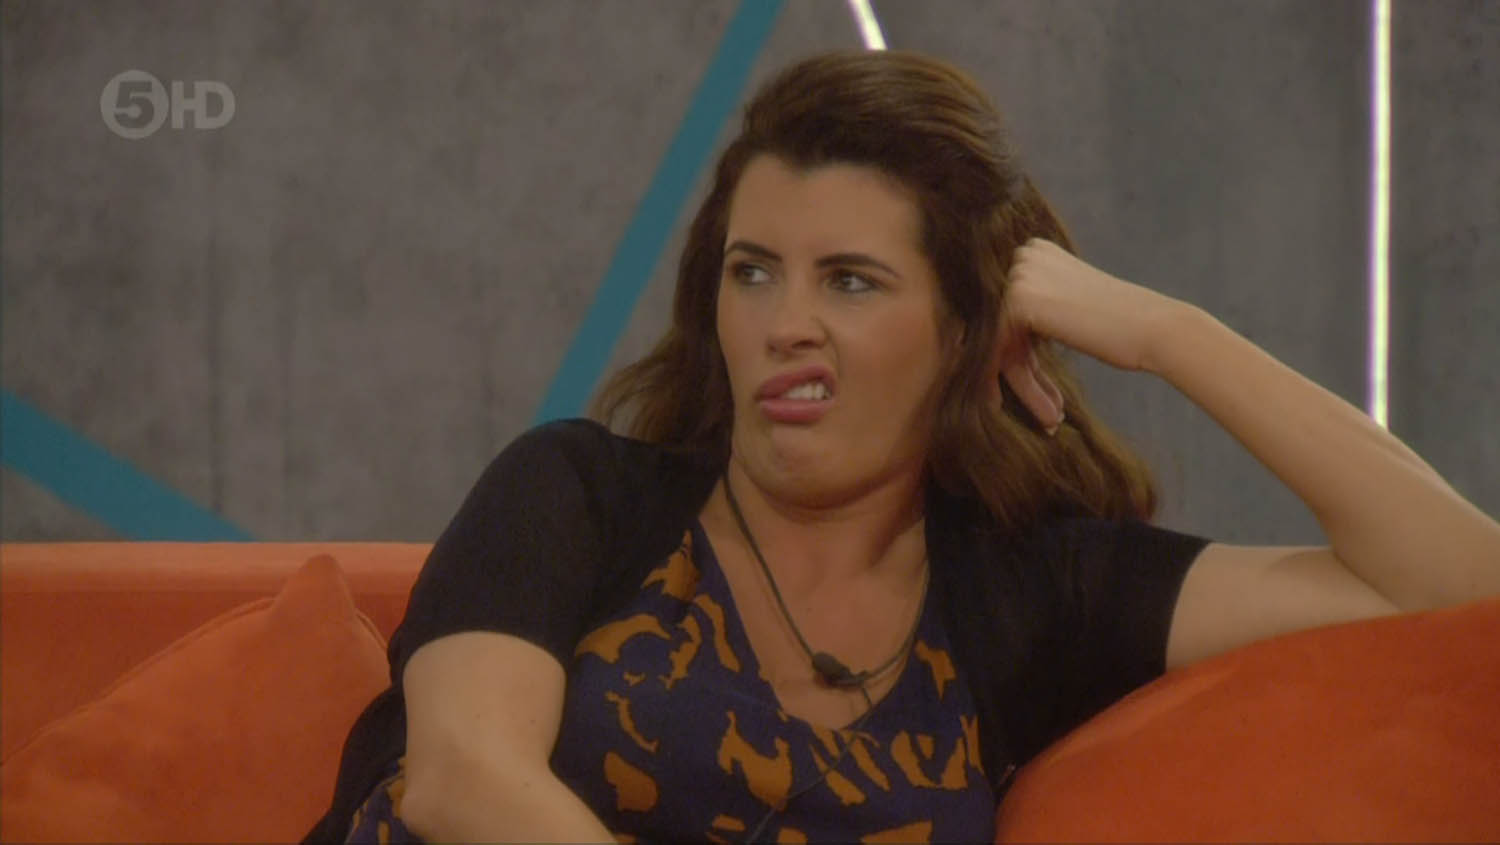 Big Brother's Helen Wood runs in to more trouble over 'rapist' comment as Ofcom is bombarded with complaints